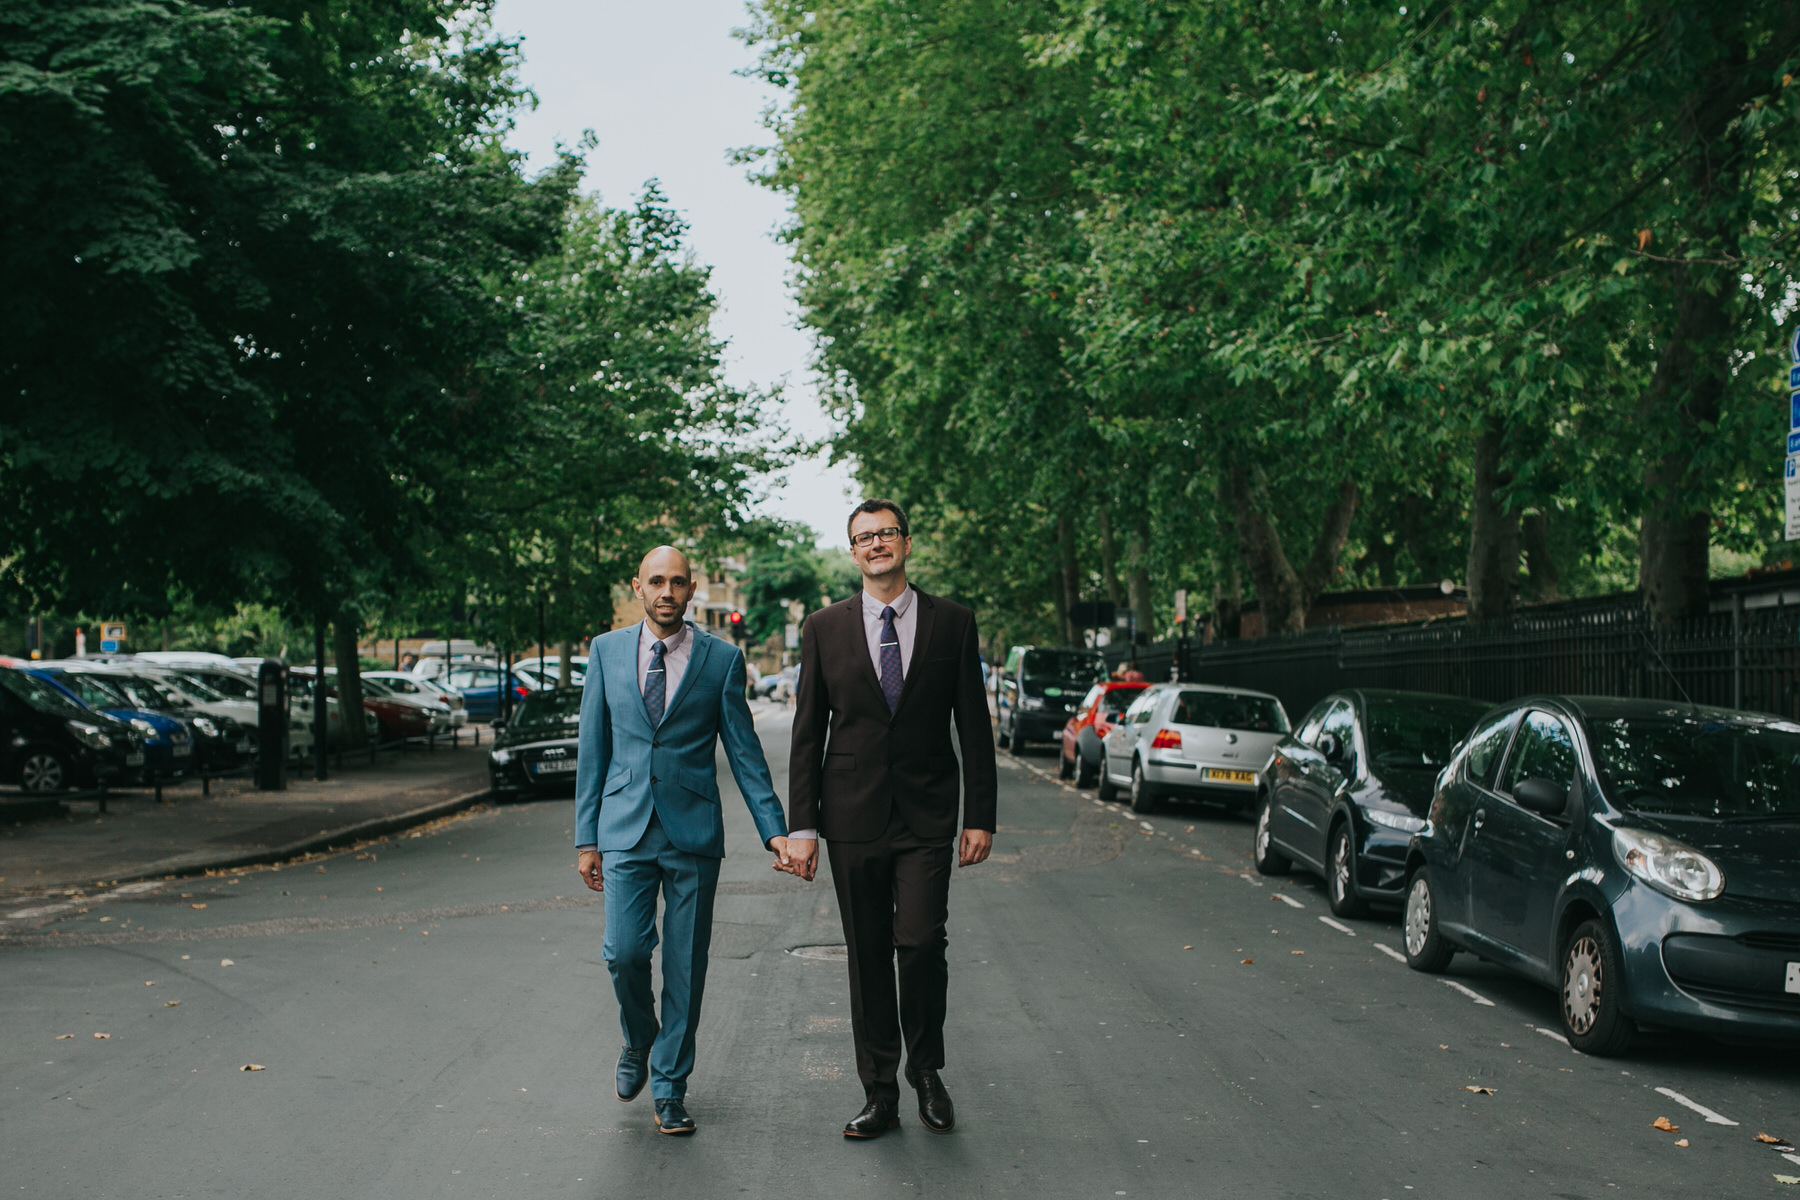 56 two grooms walking holding hands London road wedding ceremony.jpg